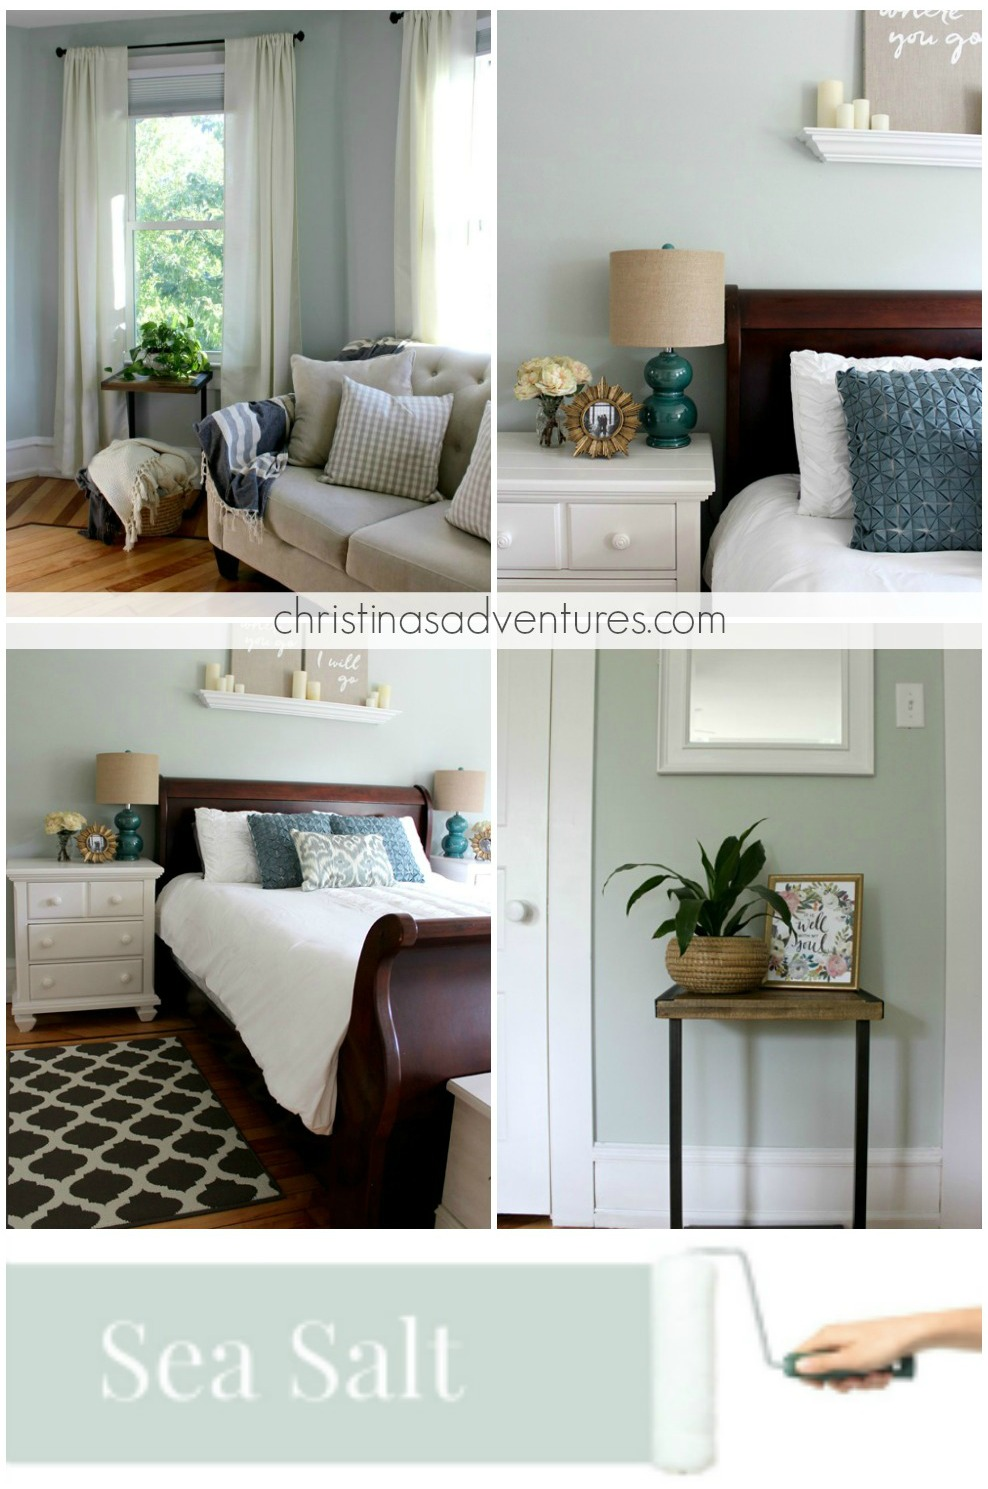 A Cool And Calming Bedroom Color Sherwin Williams Sea Salt Modern Farmhouse Paint Colors